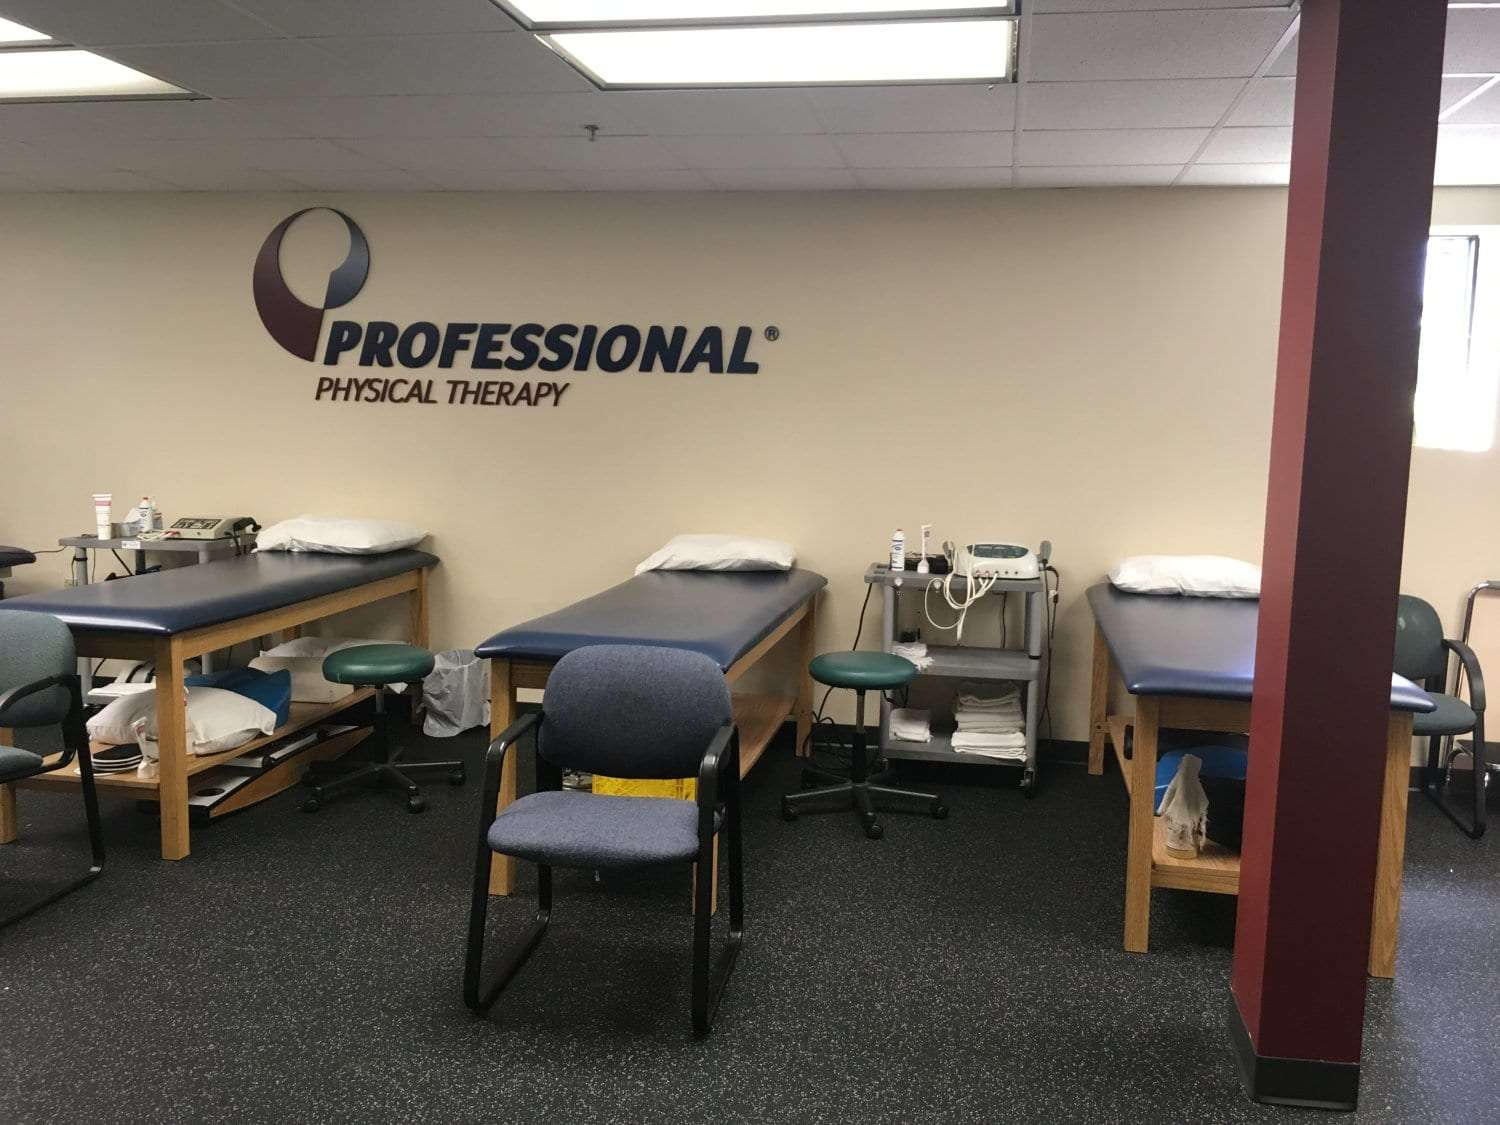 Here is an image of our clean beds at our physical therapy clinic in West Caldwell, New Jersey.